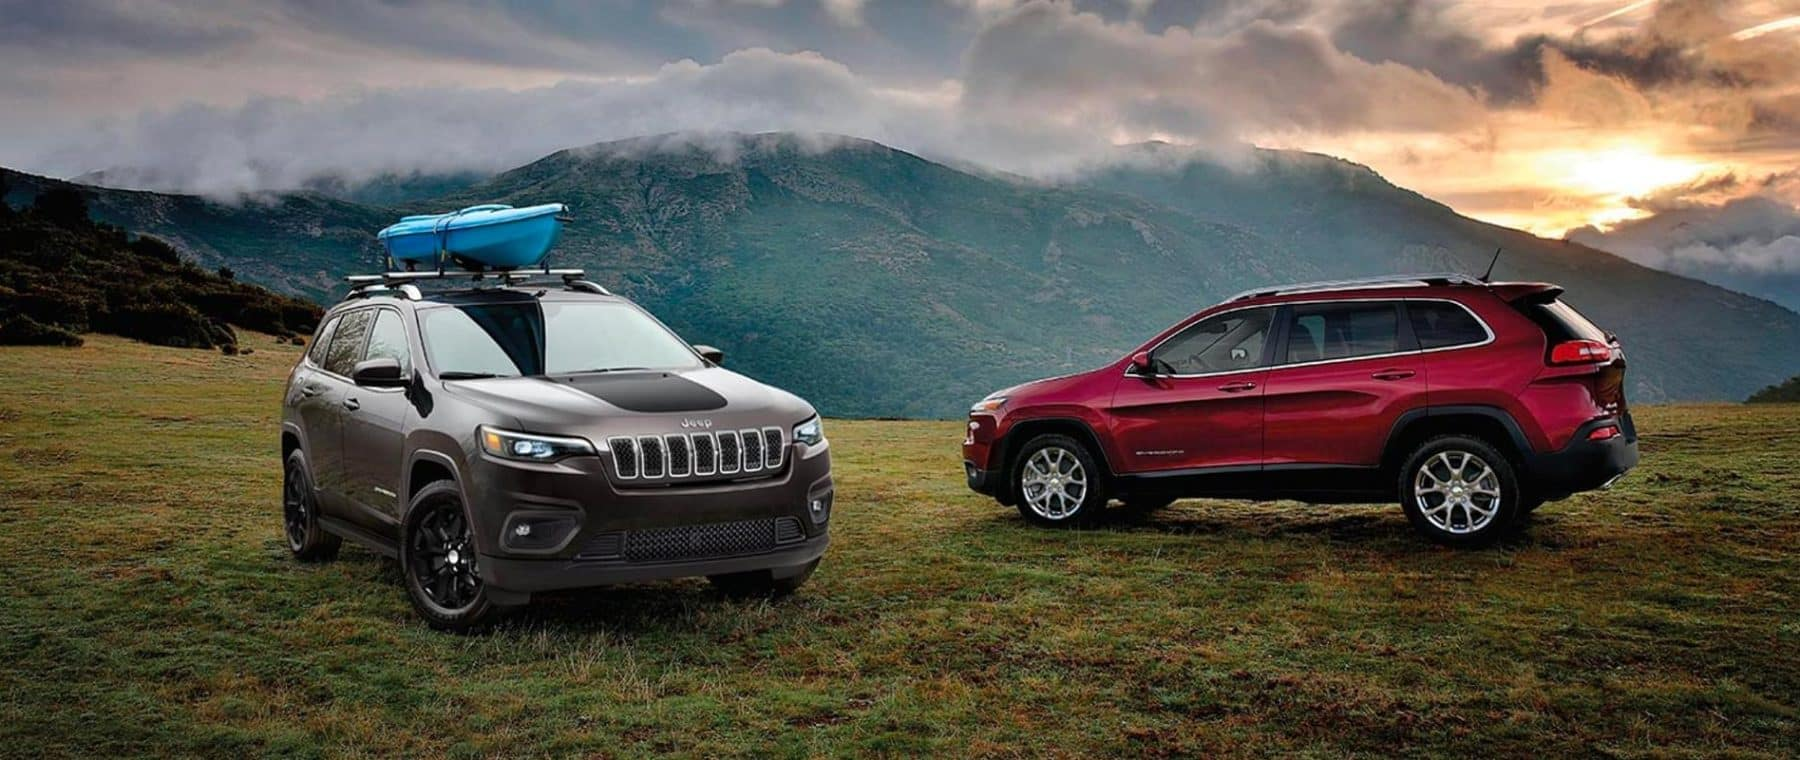 Two Jeep Cherokee's on a mountain top.